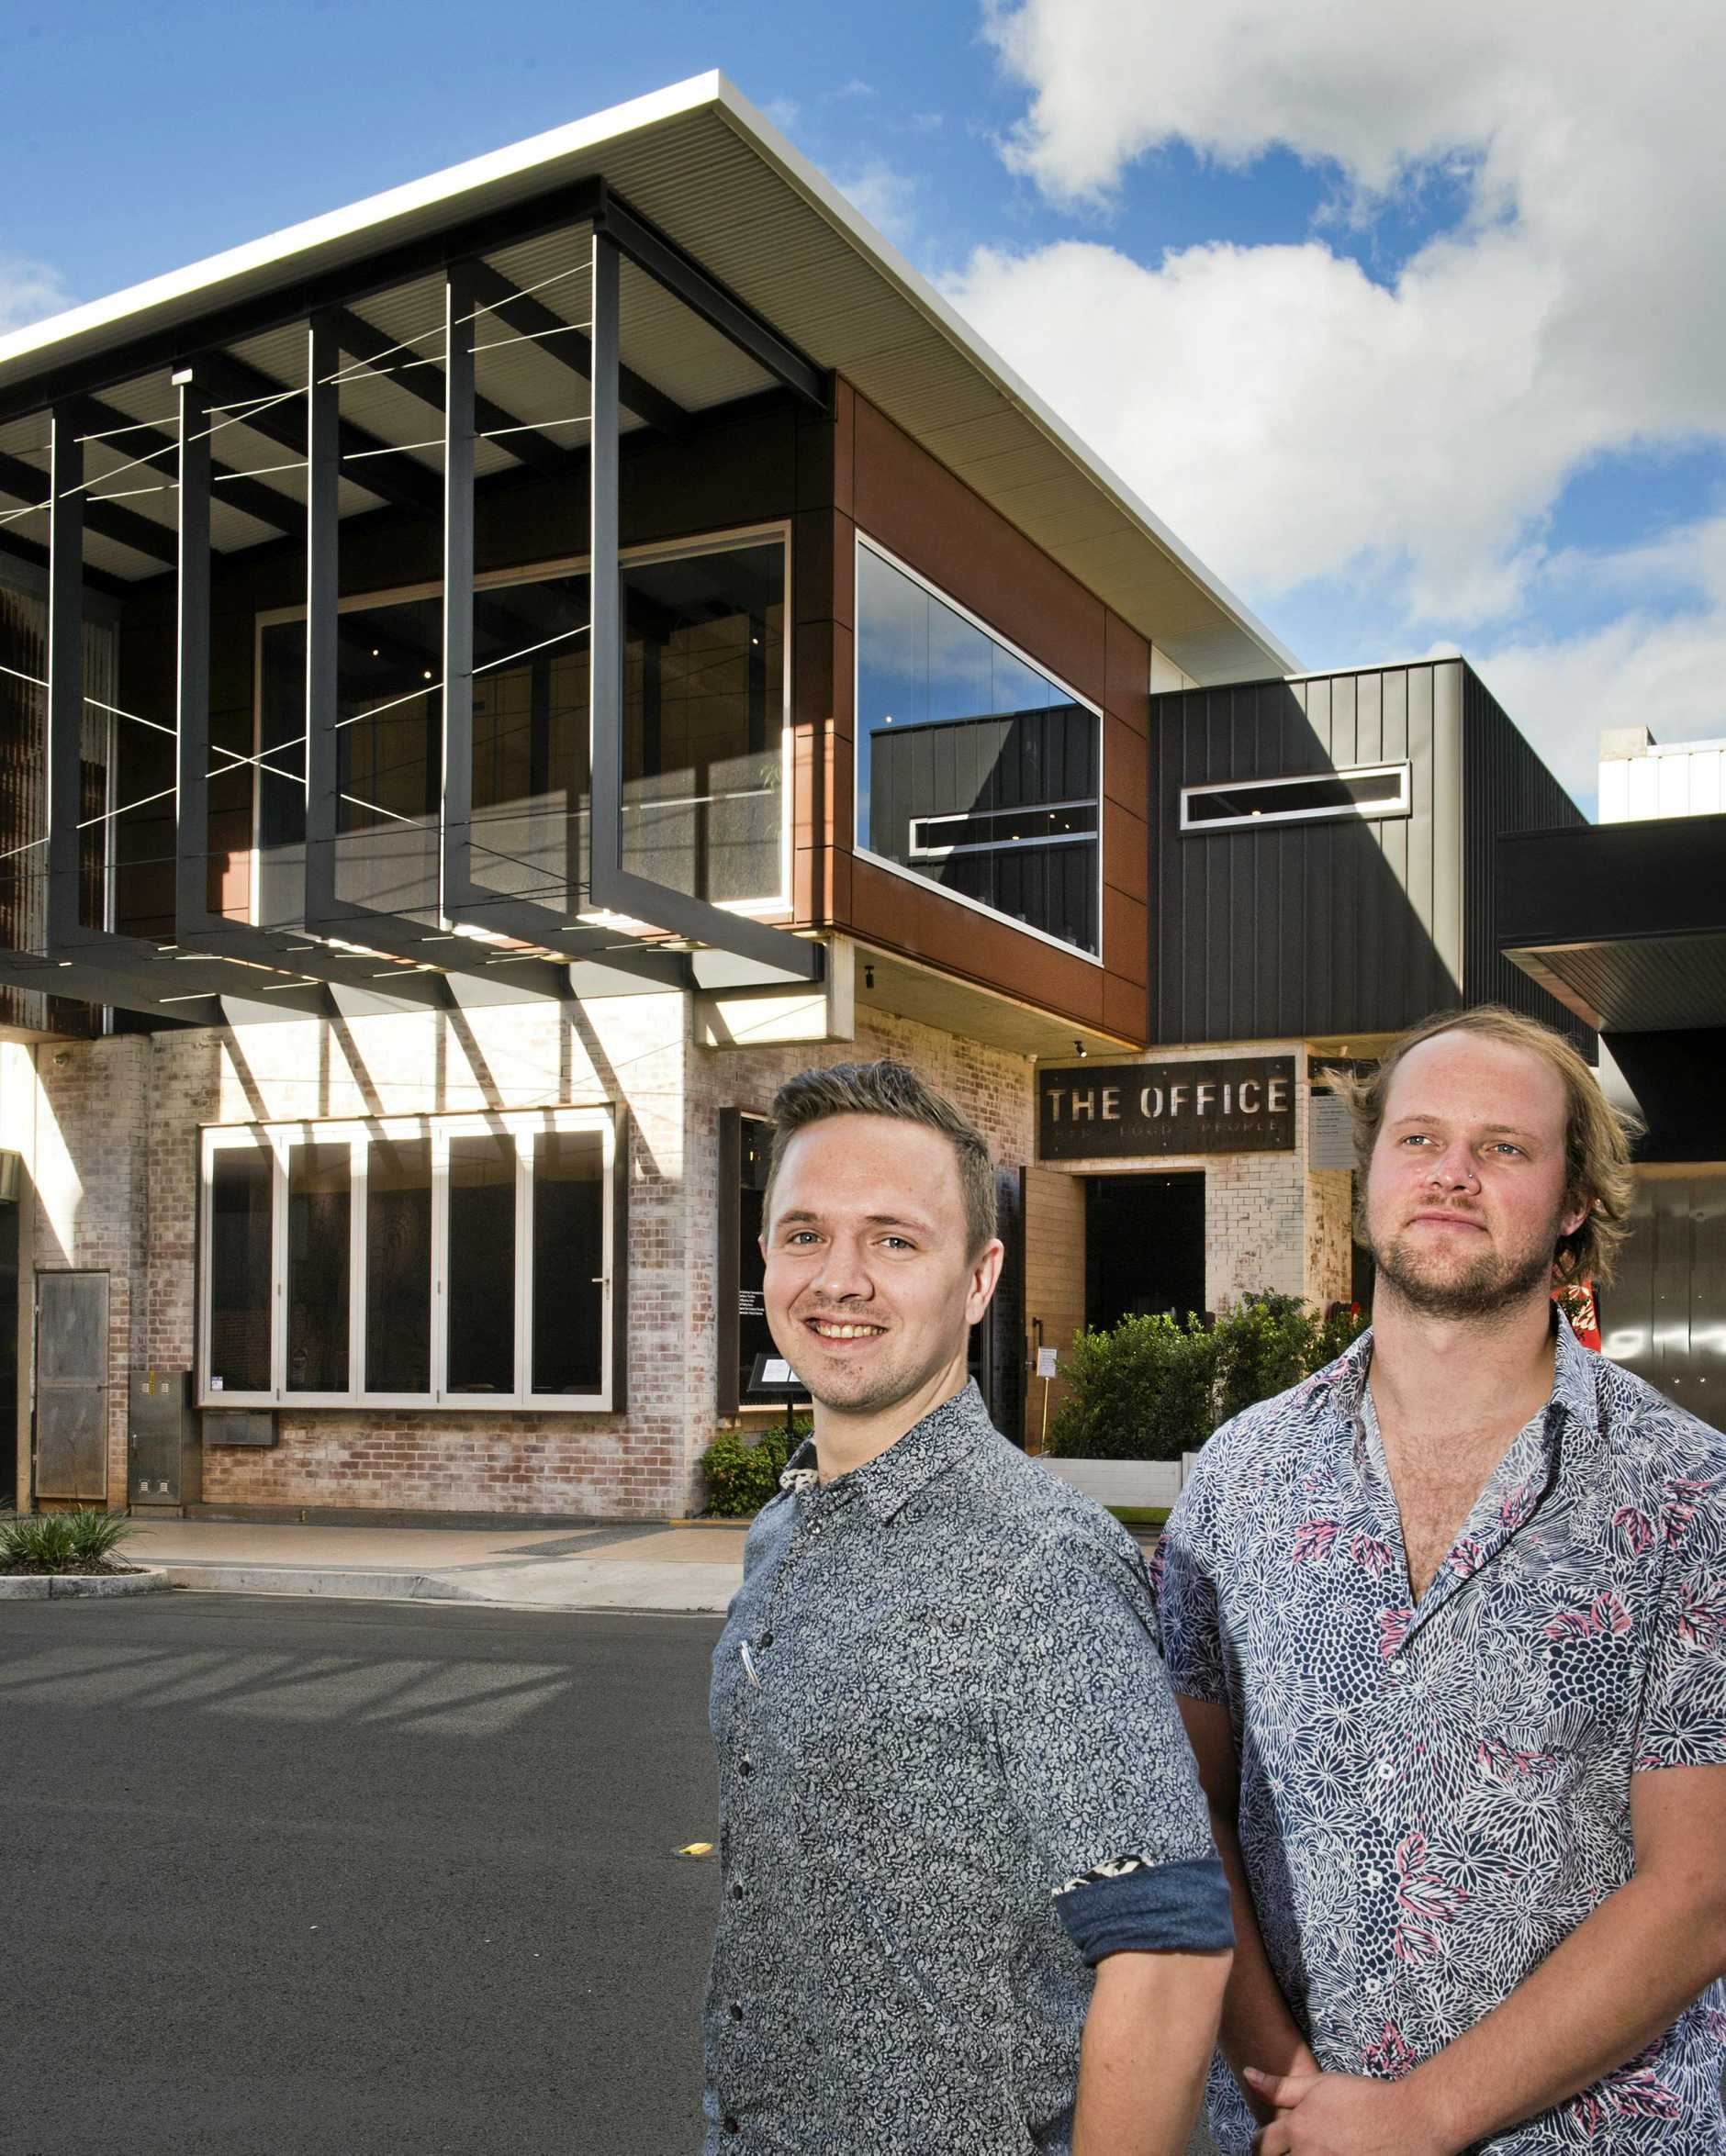 OFFICE HOURS: David Brosnan and Ollie Carpenter from The Office look forward to a new beginning at the Duggan St bar.